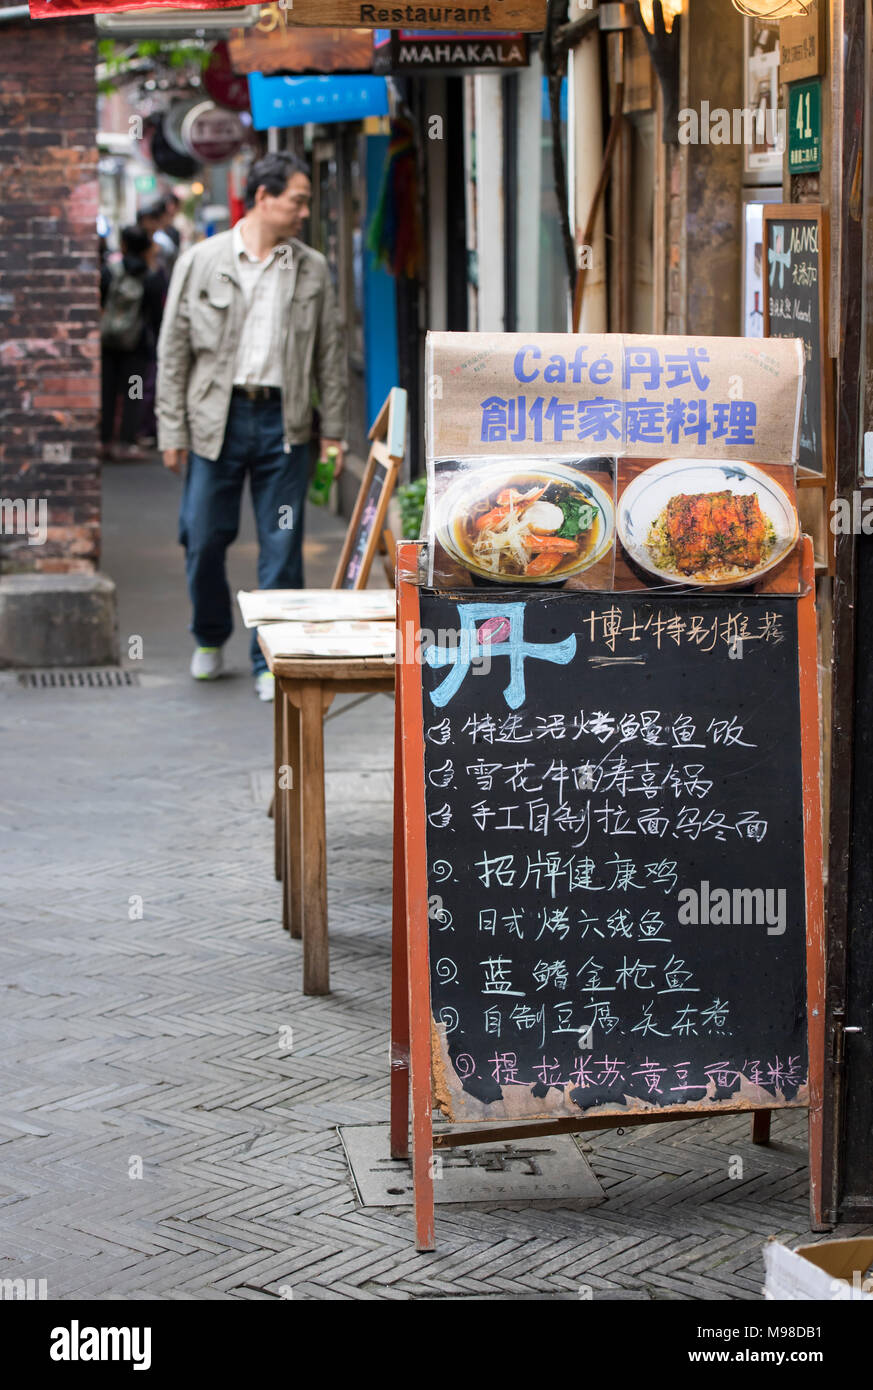 Man walking past a cafe in Shanghai, China - Stock Image